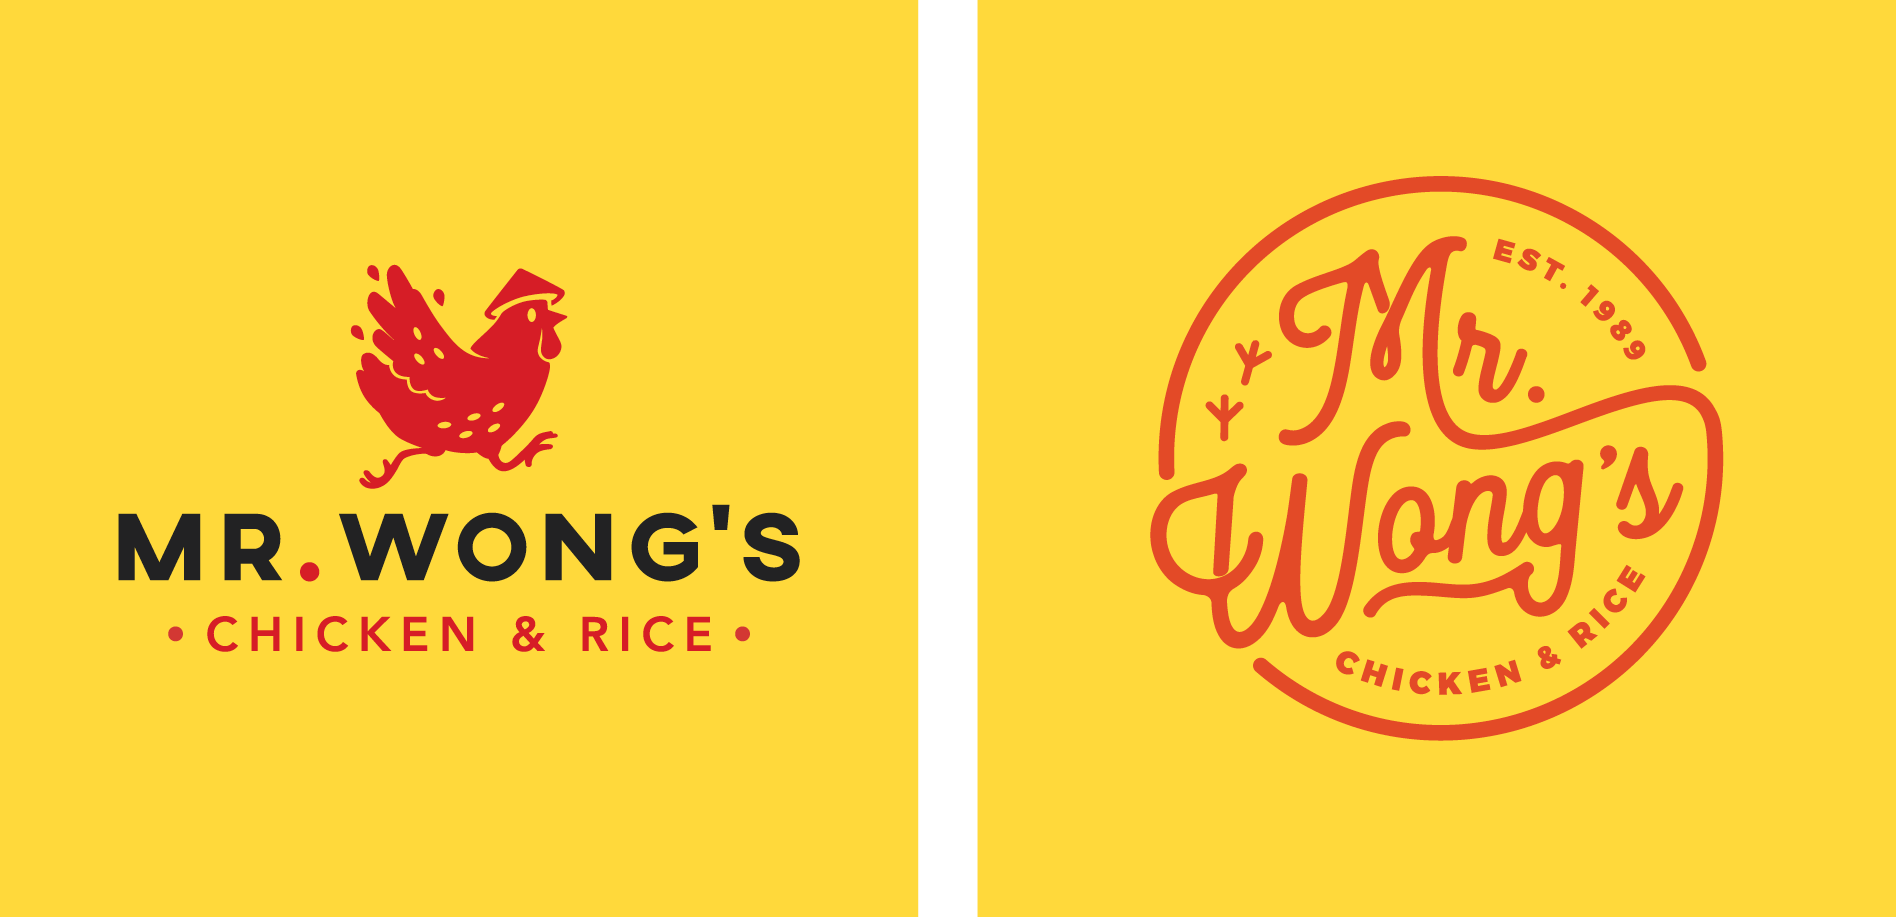 chicken restaurant logo designs